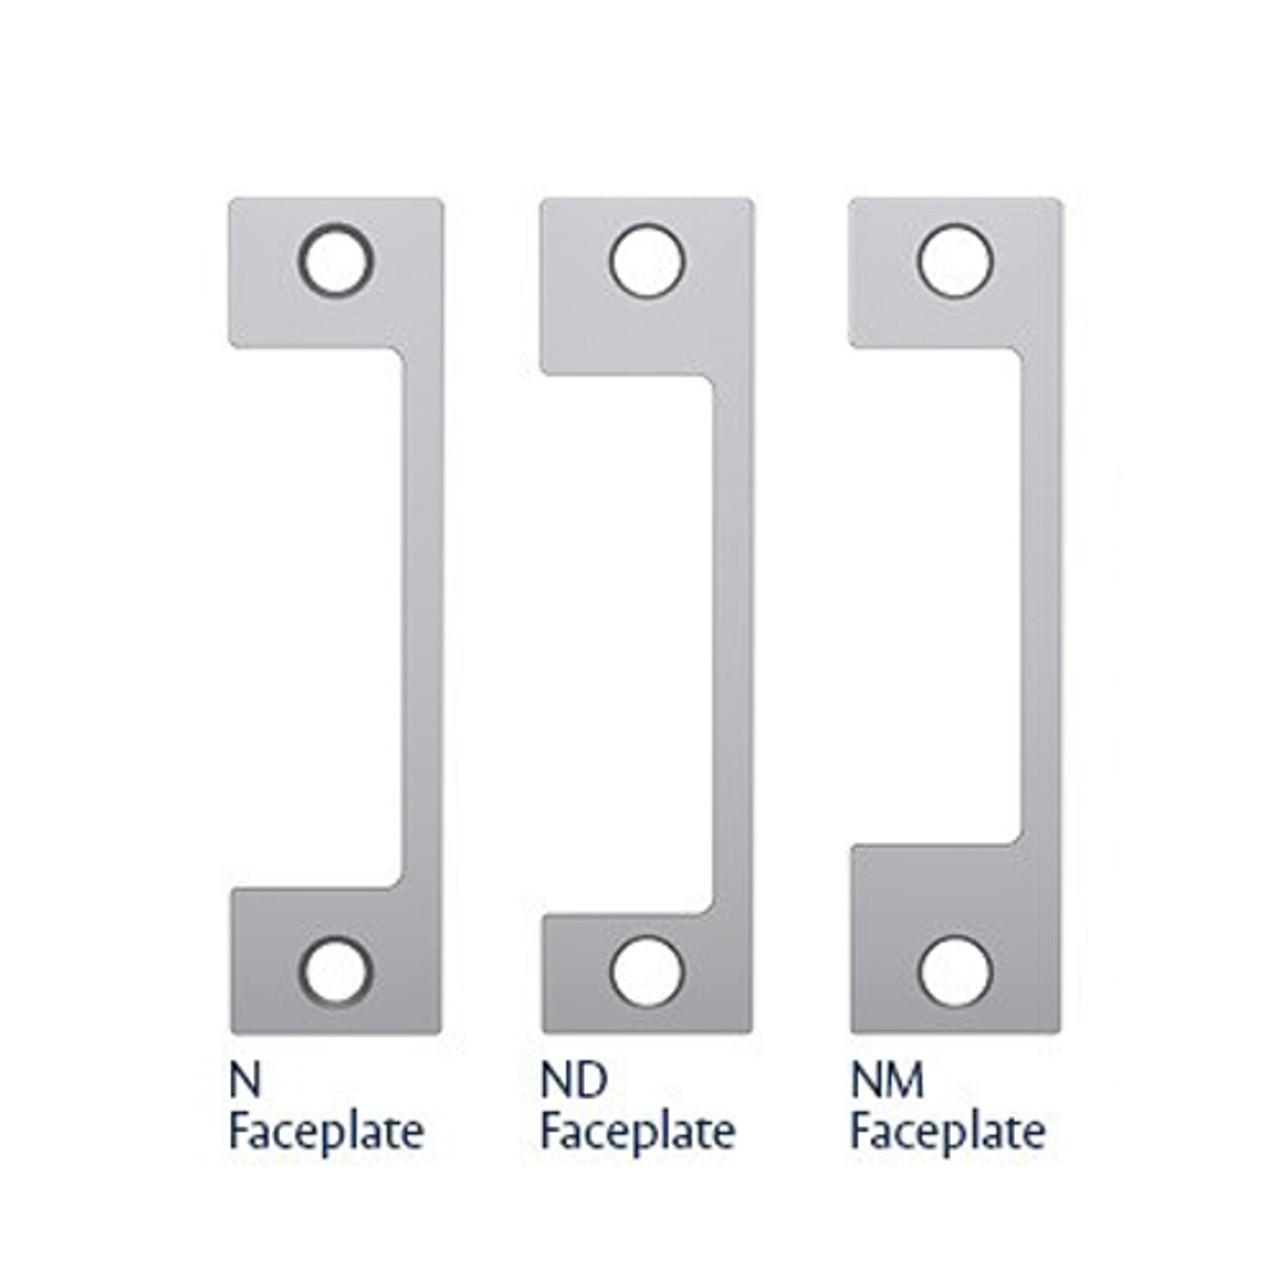 1006CAS-630 Hes 1006 Series Complete Electric Strike for Deadbolt Recapture Lock in Satin Stainless Finish